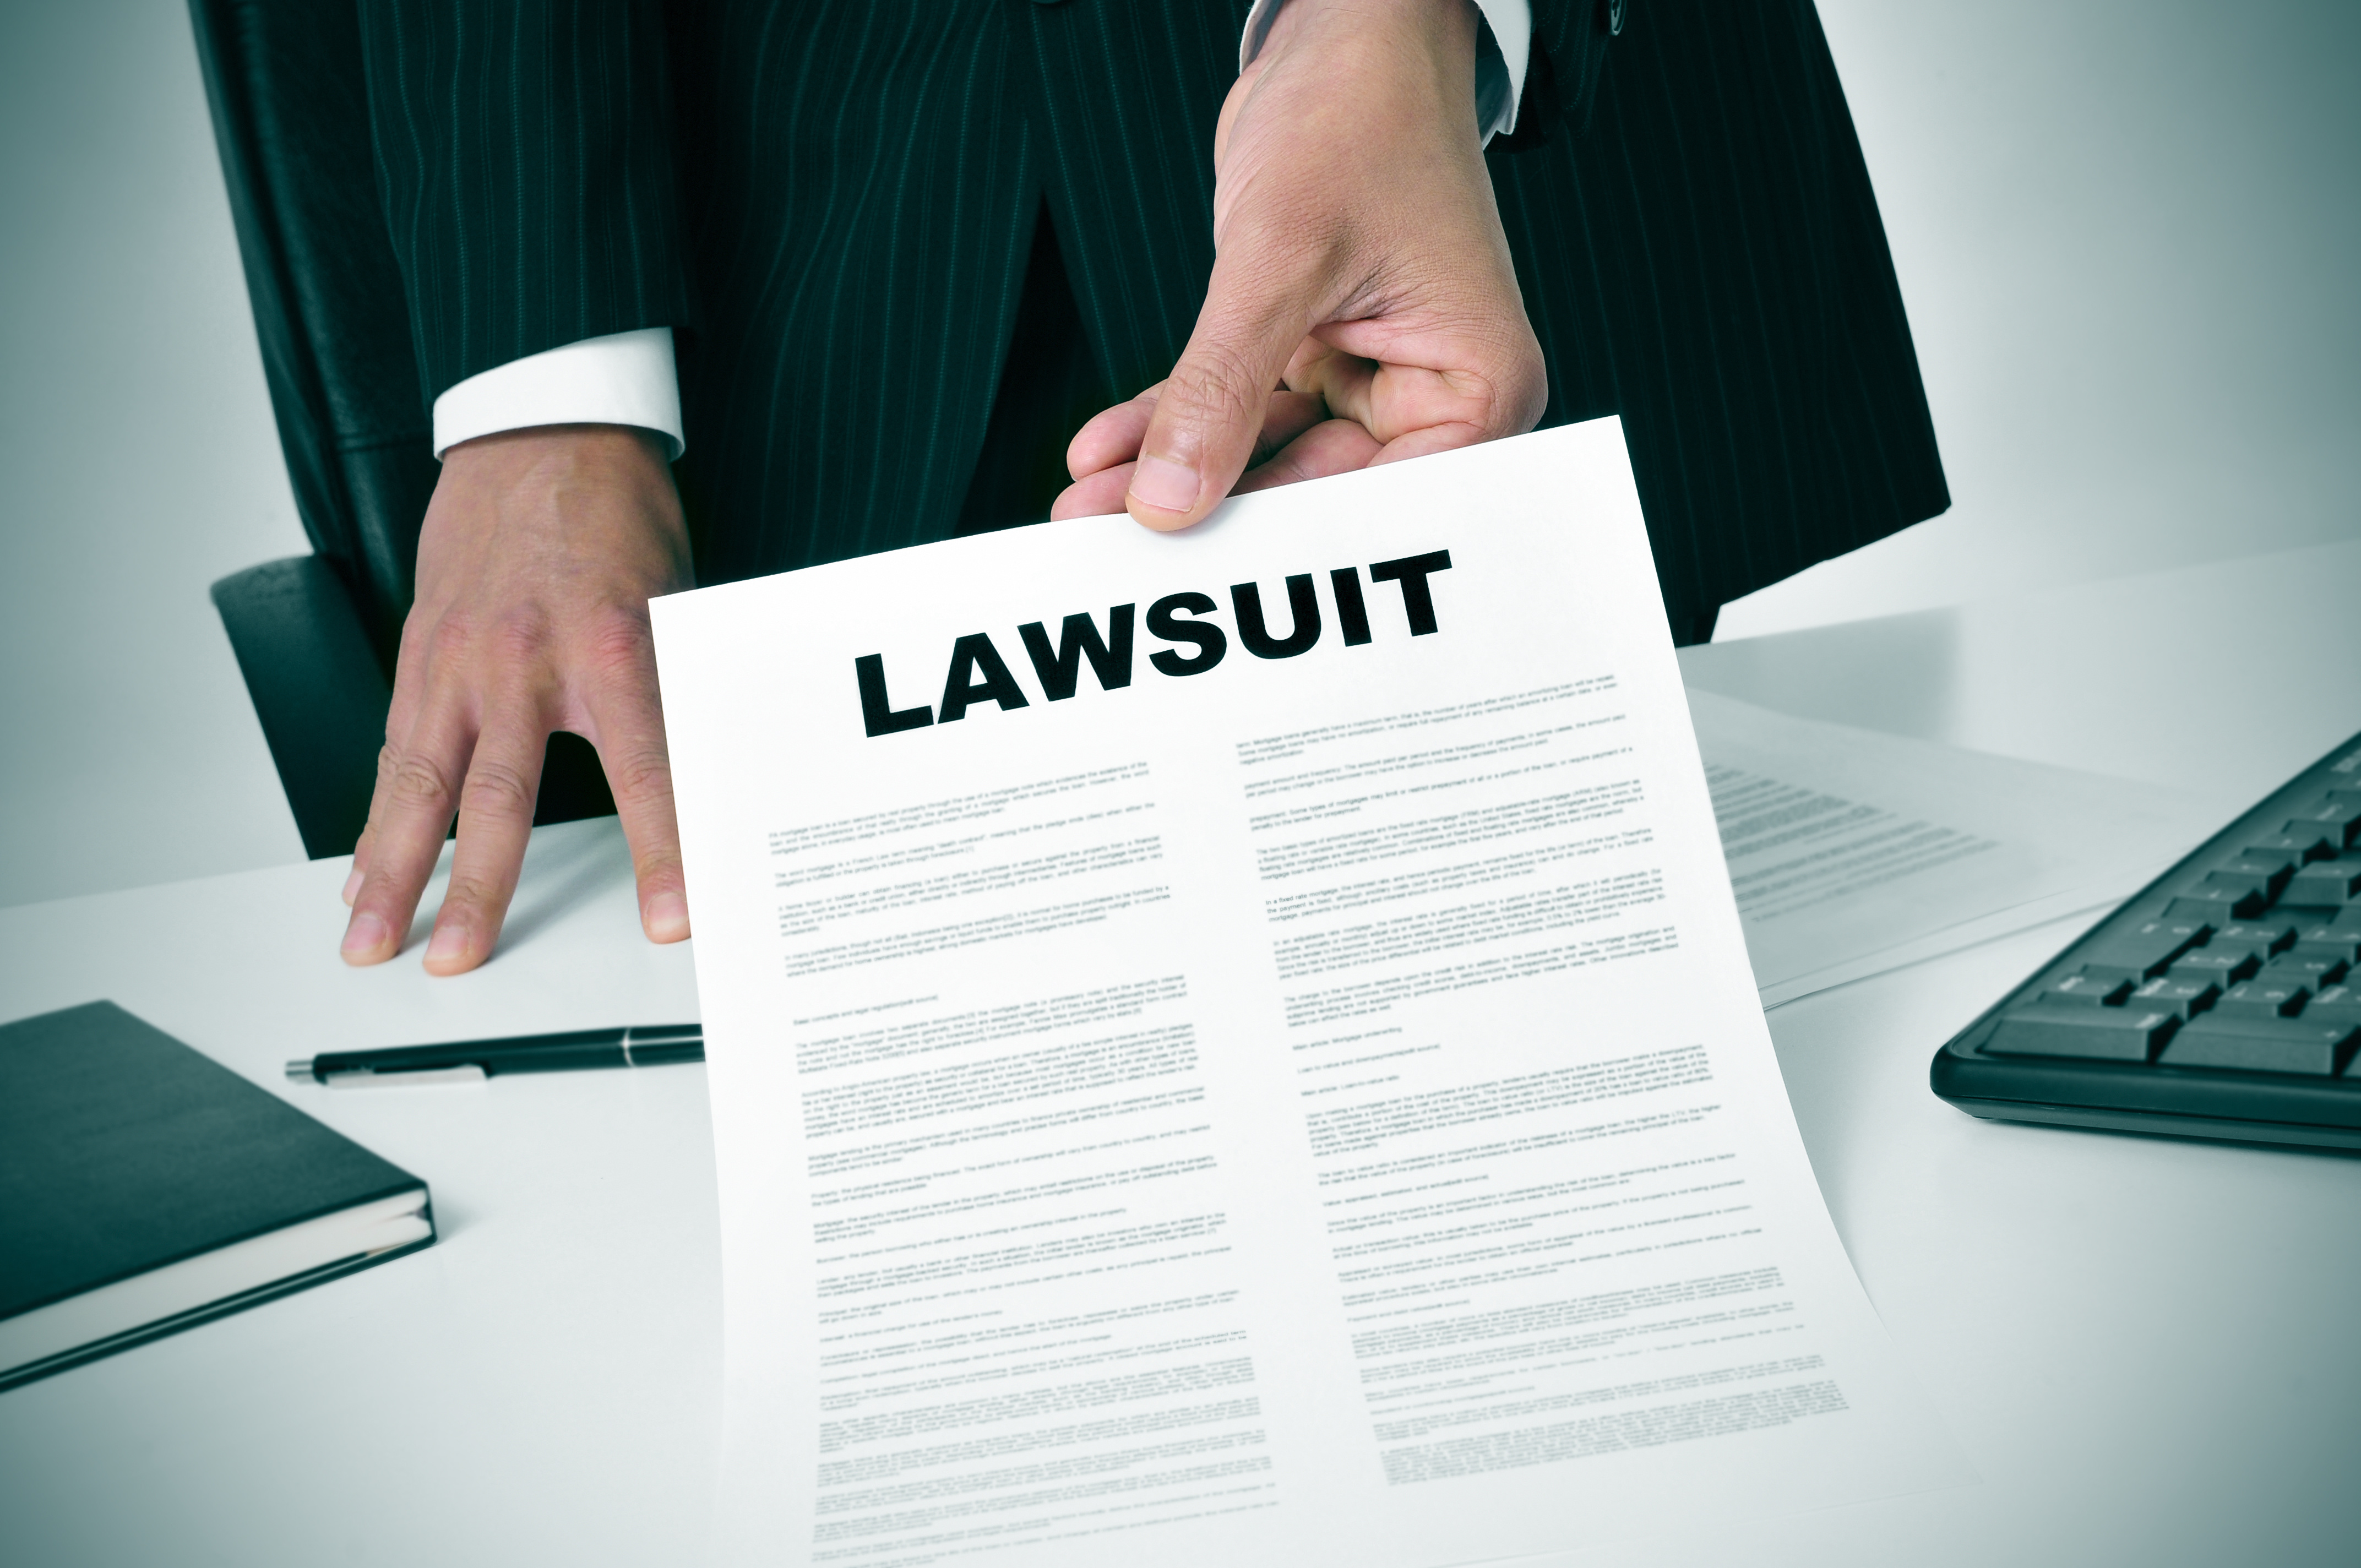 How would an Invokana product liability lawsuit work?